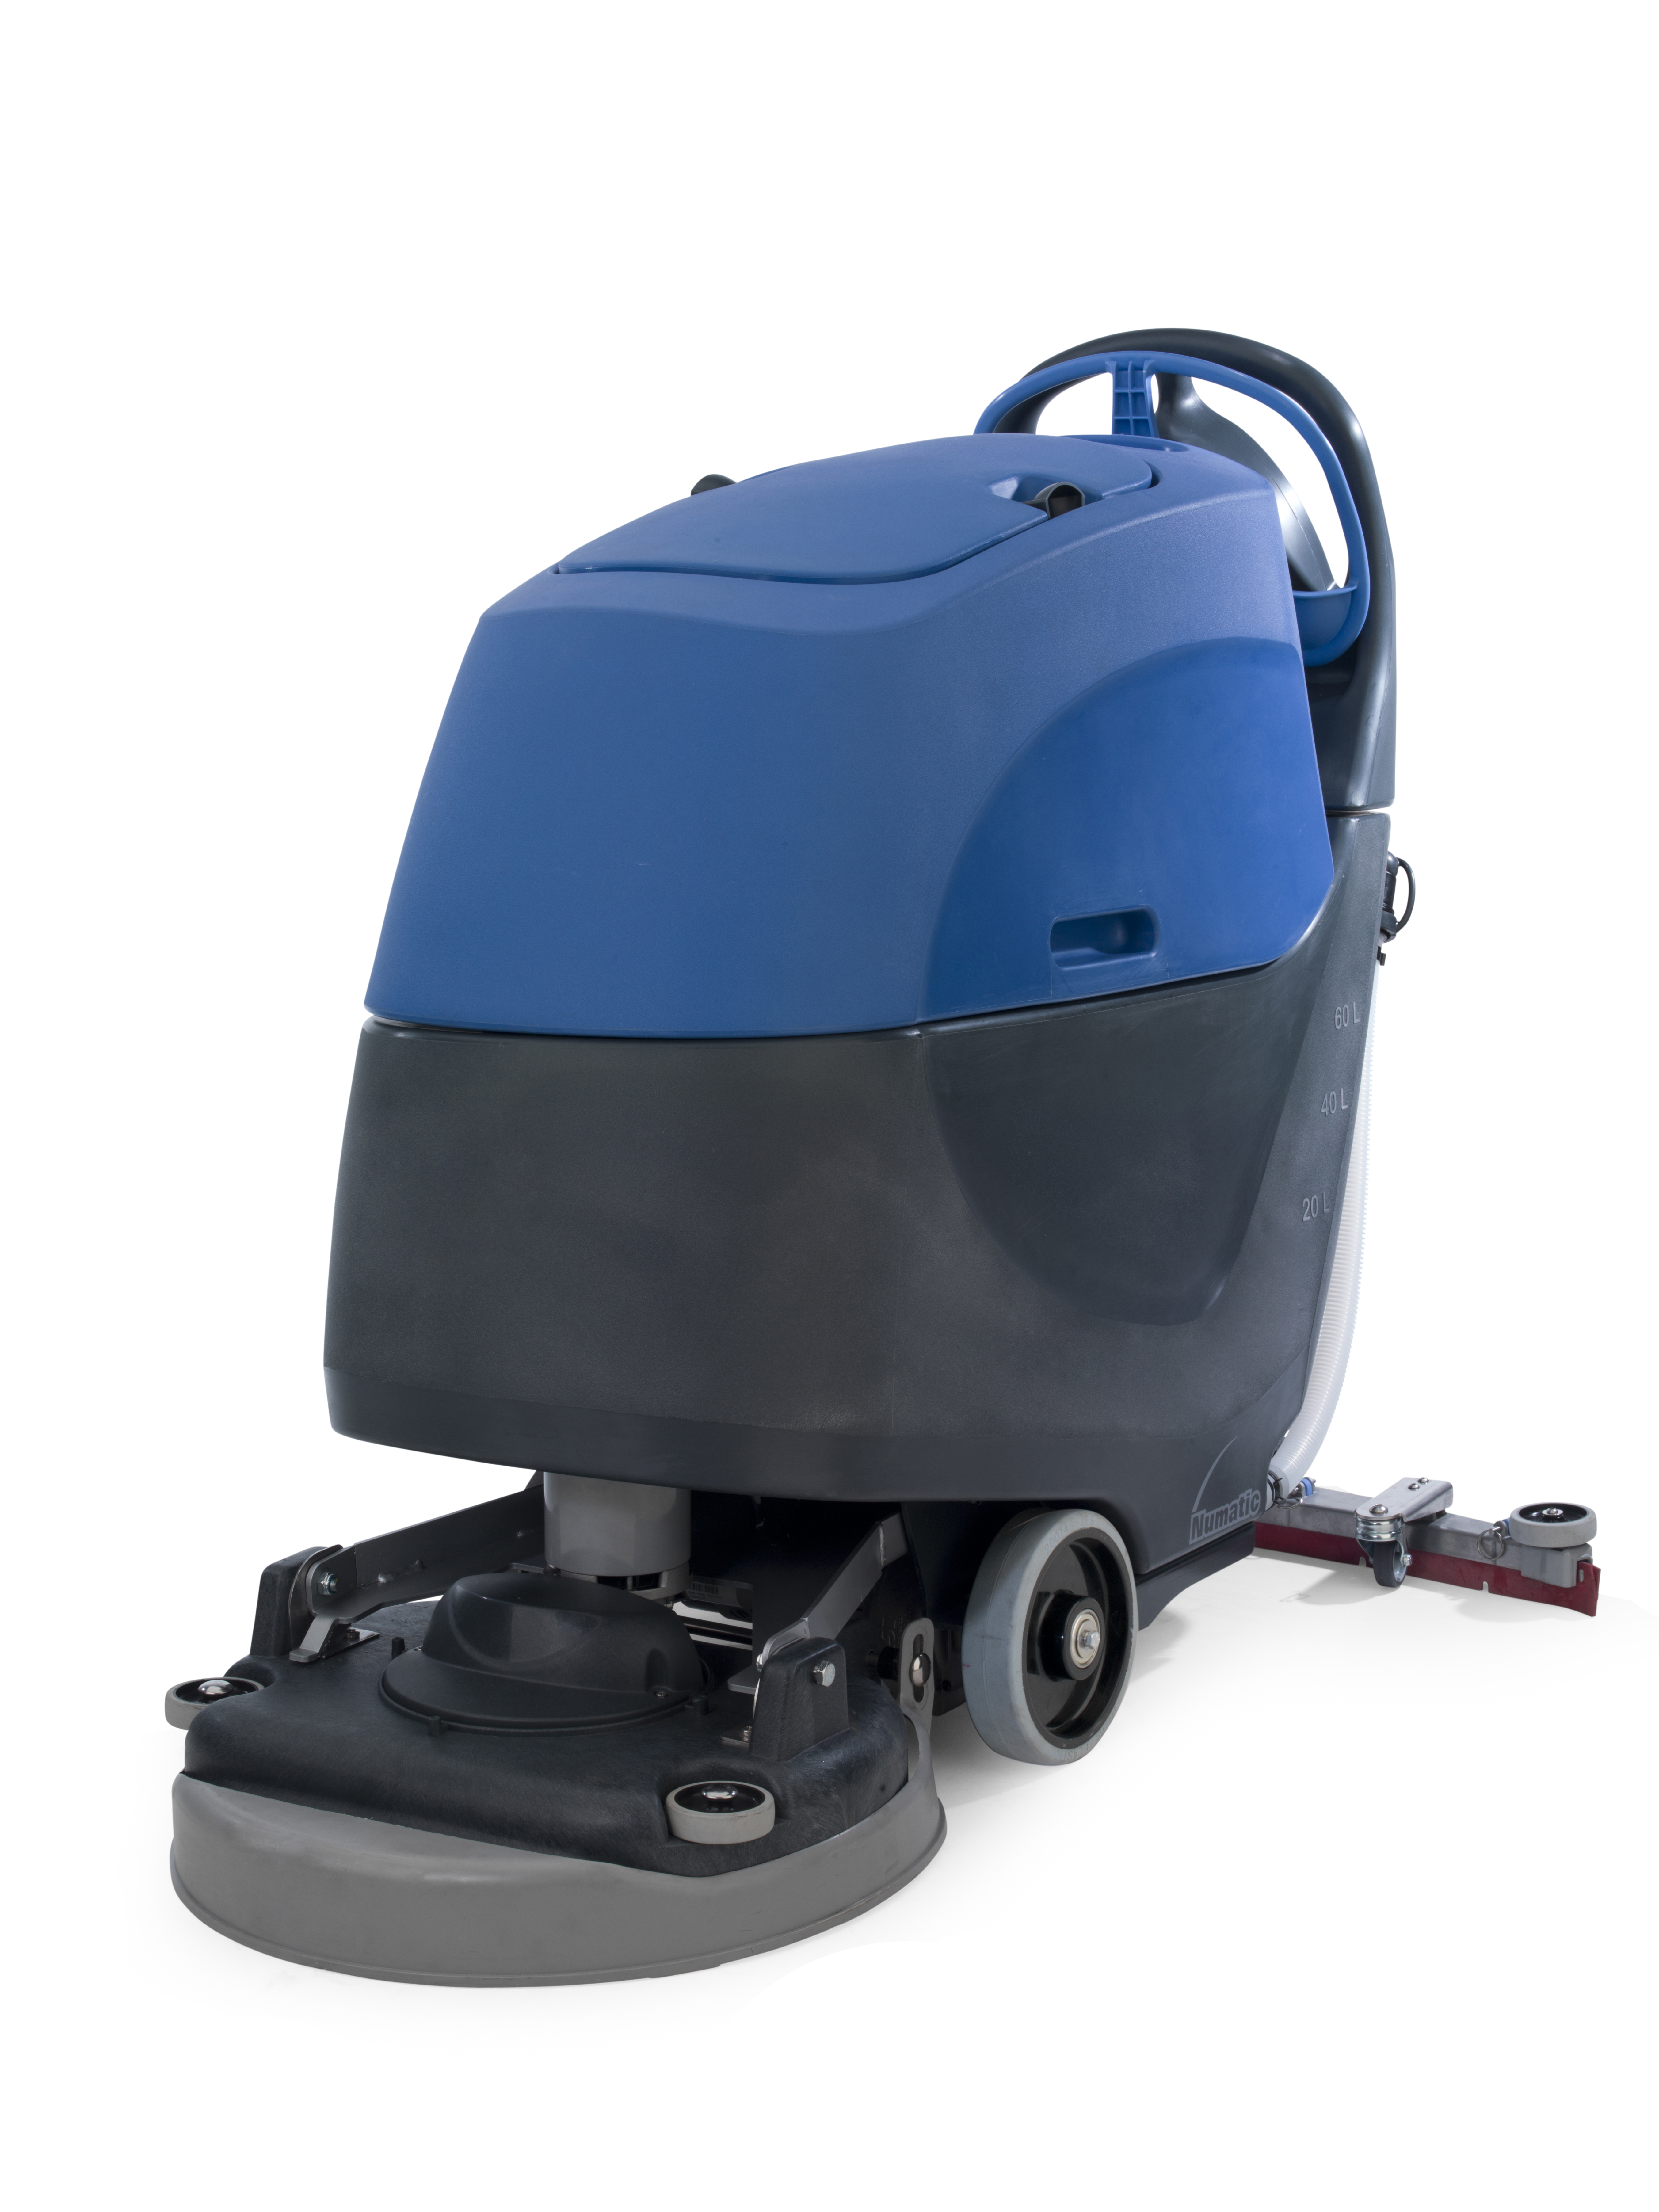 hidden hire blue best floor machine scrubbing polisher use home agenda for photos the machines of cleaning maize harrison